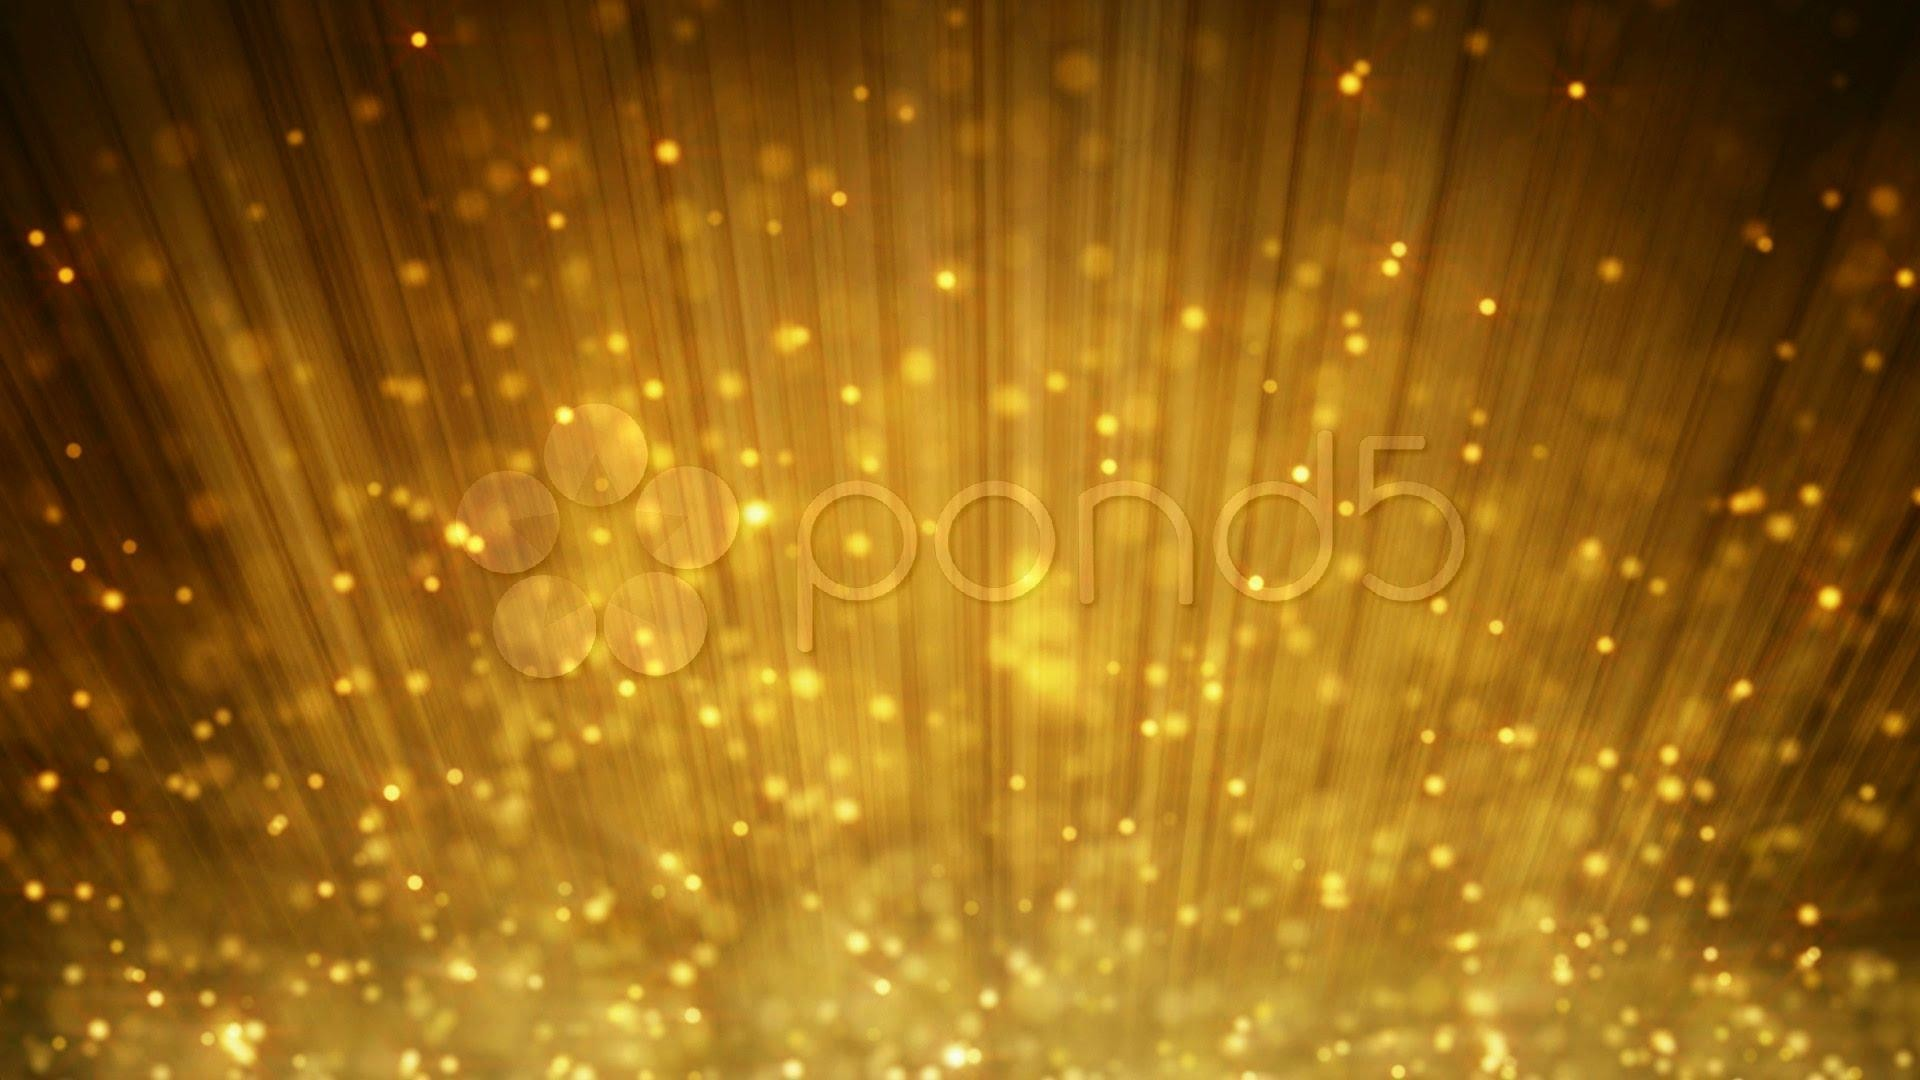 Pictures-Images-Gold-Glitter-Wallpaper-HD